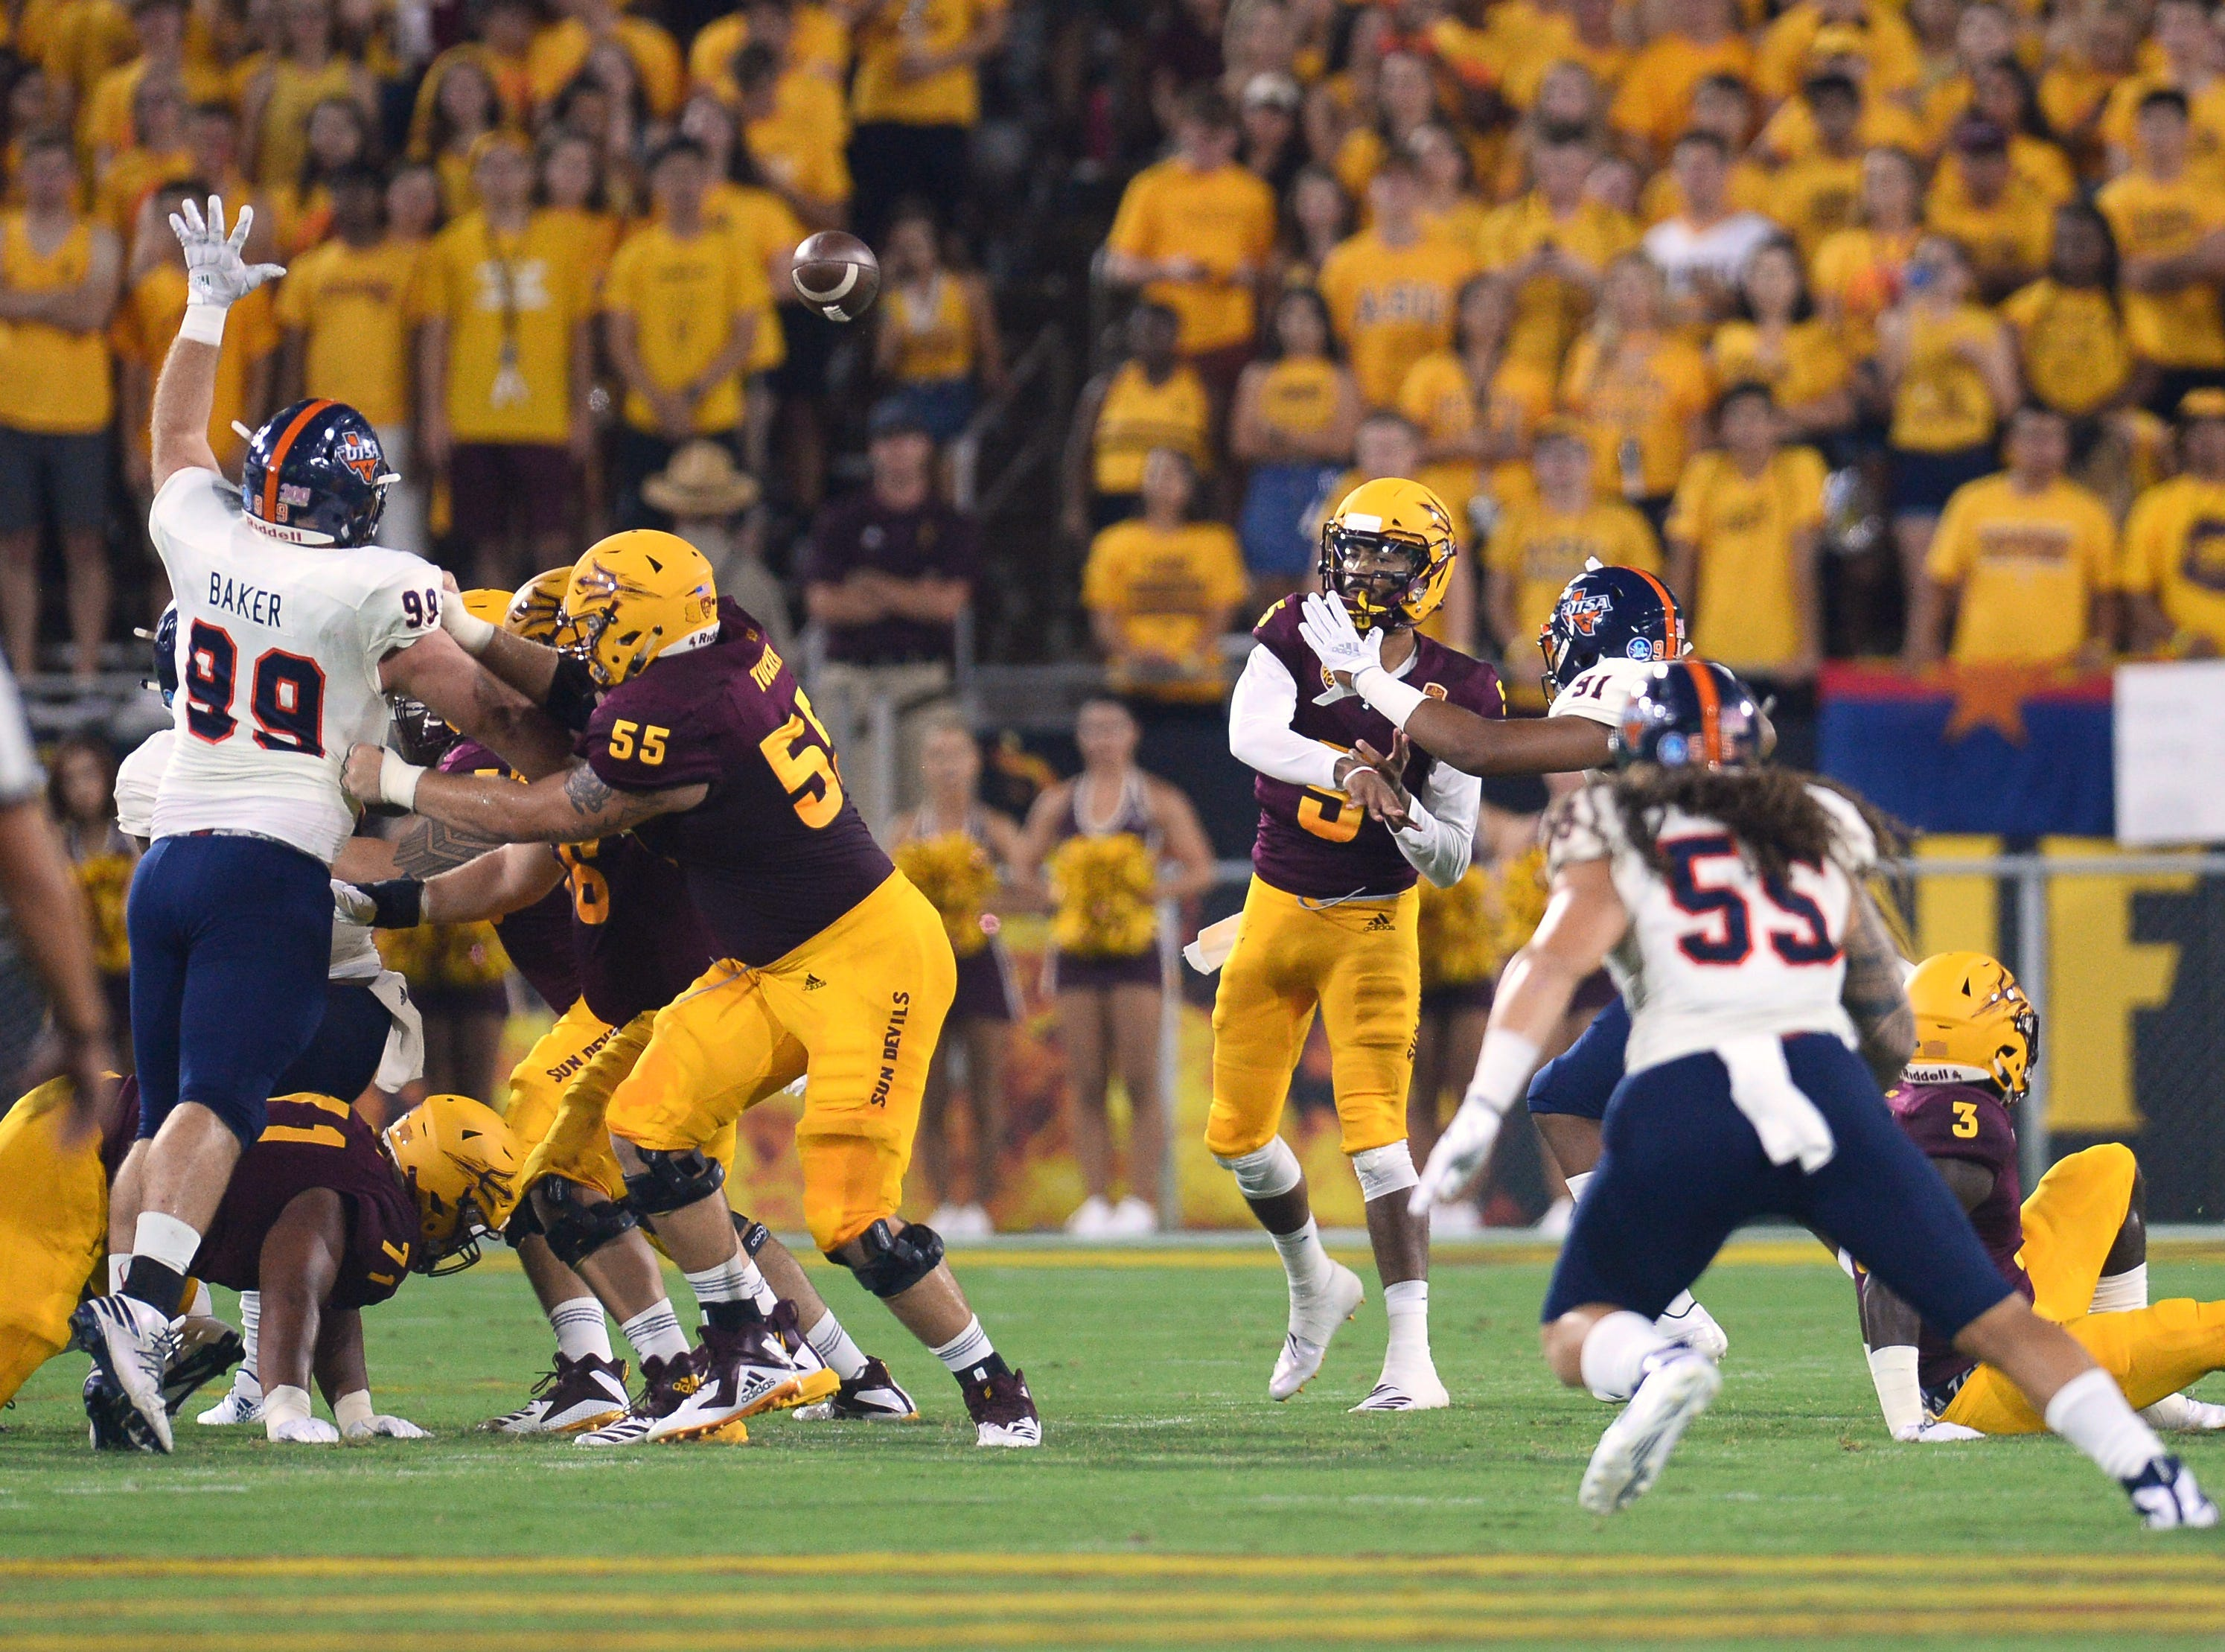 Sep 1, 2018; Tempe, AZ, USA; Arizona State Sun Devils quarterback Manny Wilkins (5) throws a pass against the UTSA Roadrunners during the first half at Sun Devil Stadium.